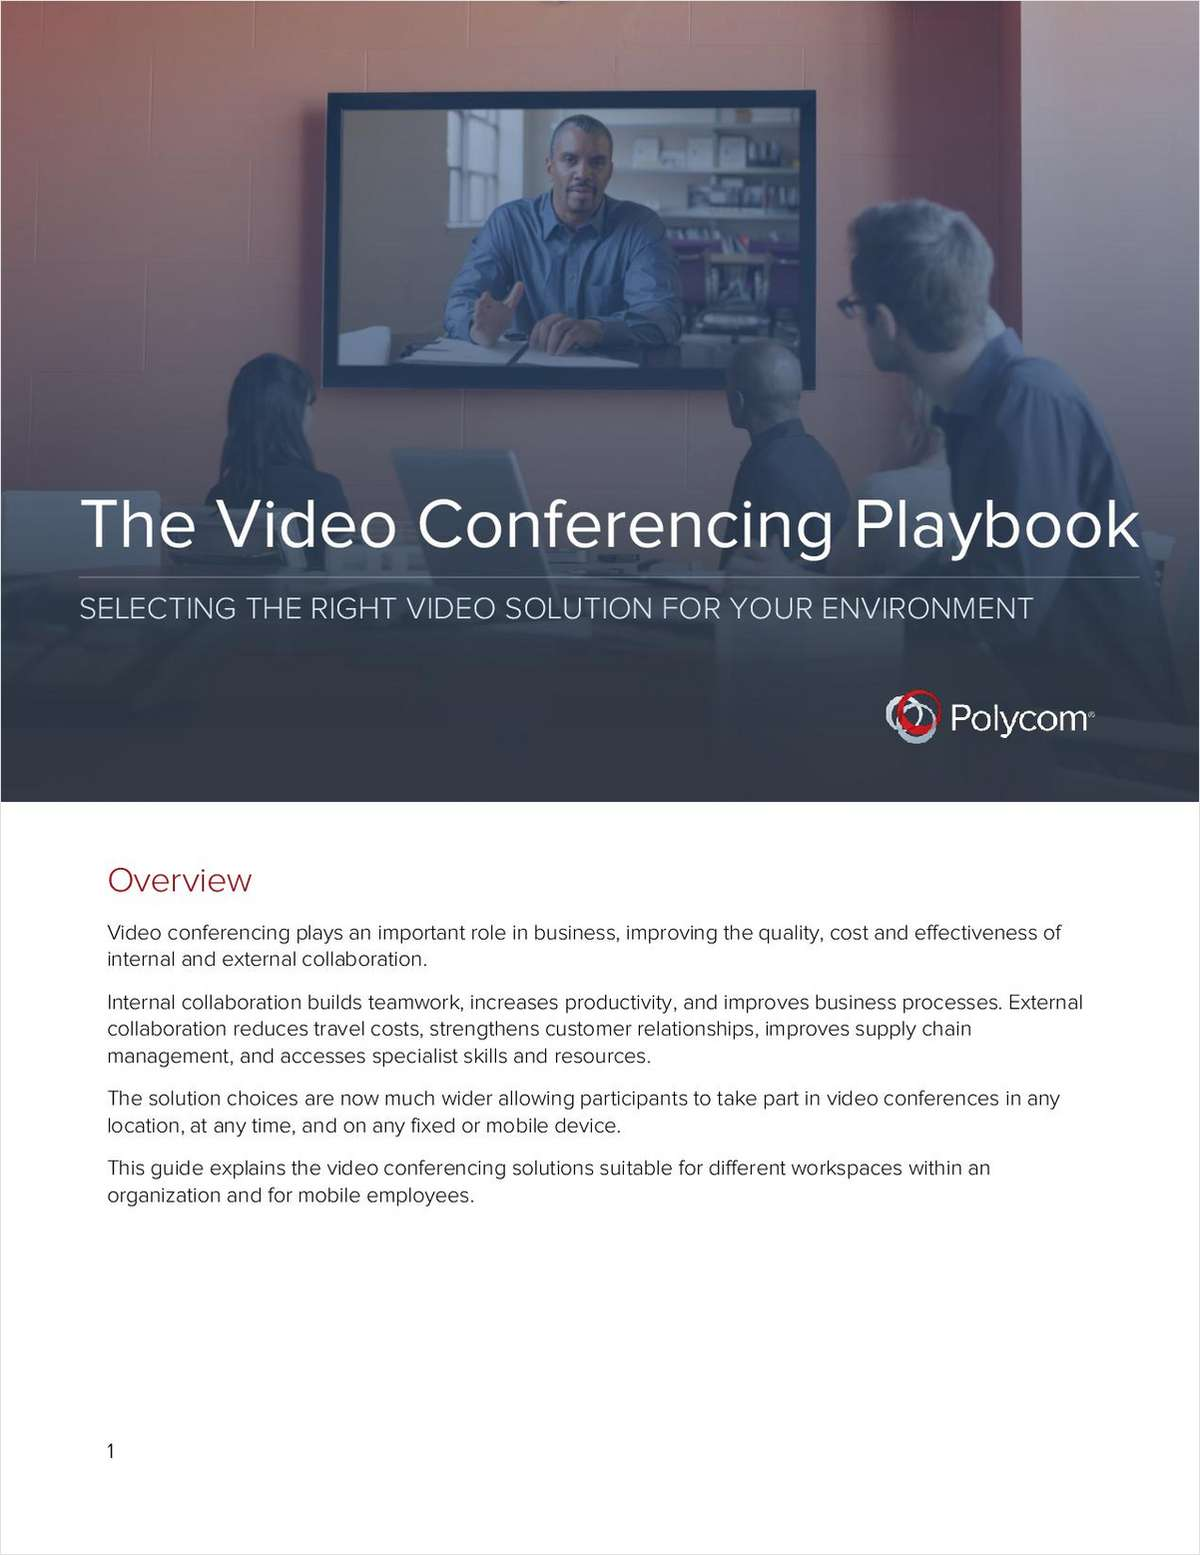 The Video Conferencing Playbook: Selecting the Right Video Solution for Your Environment